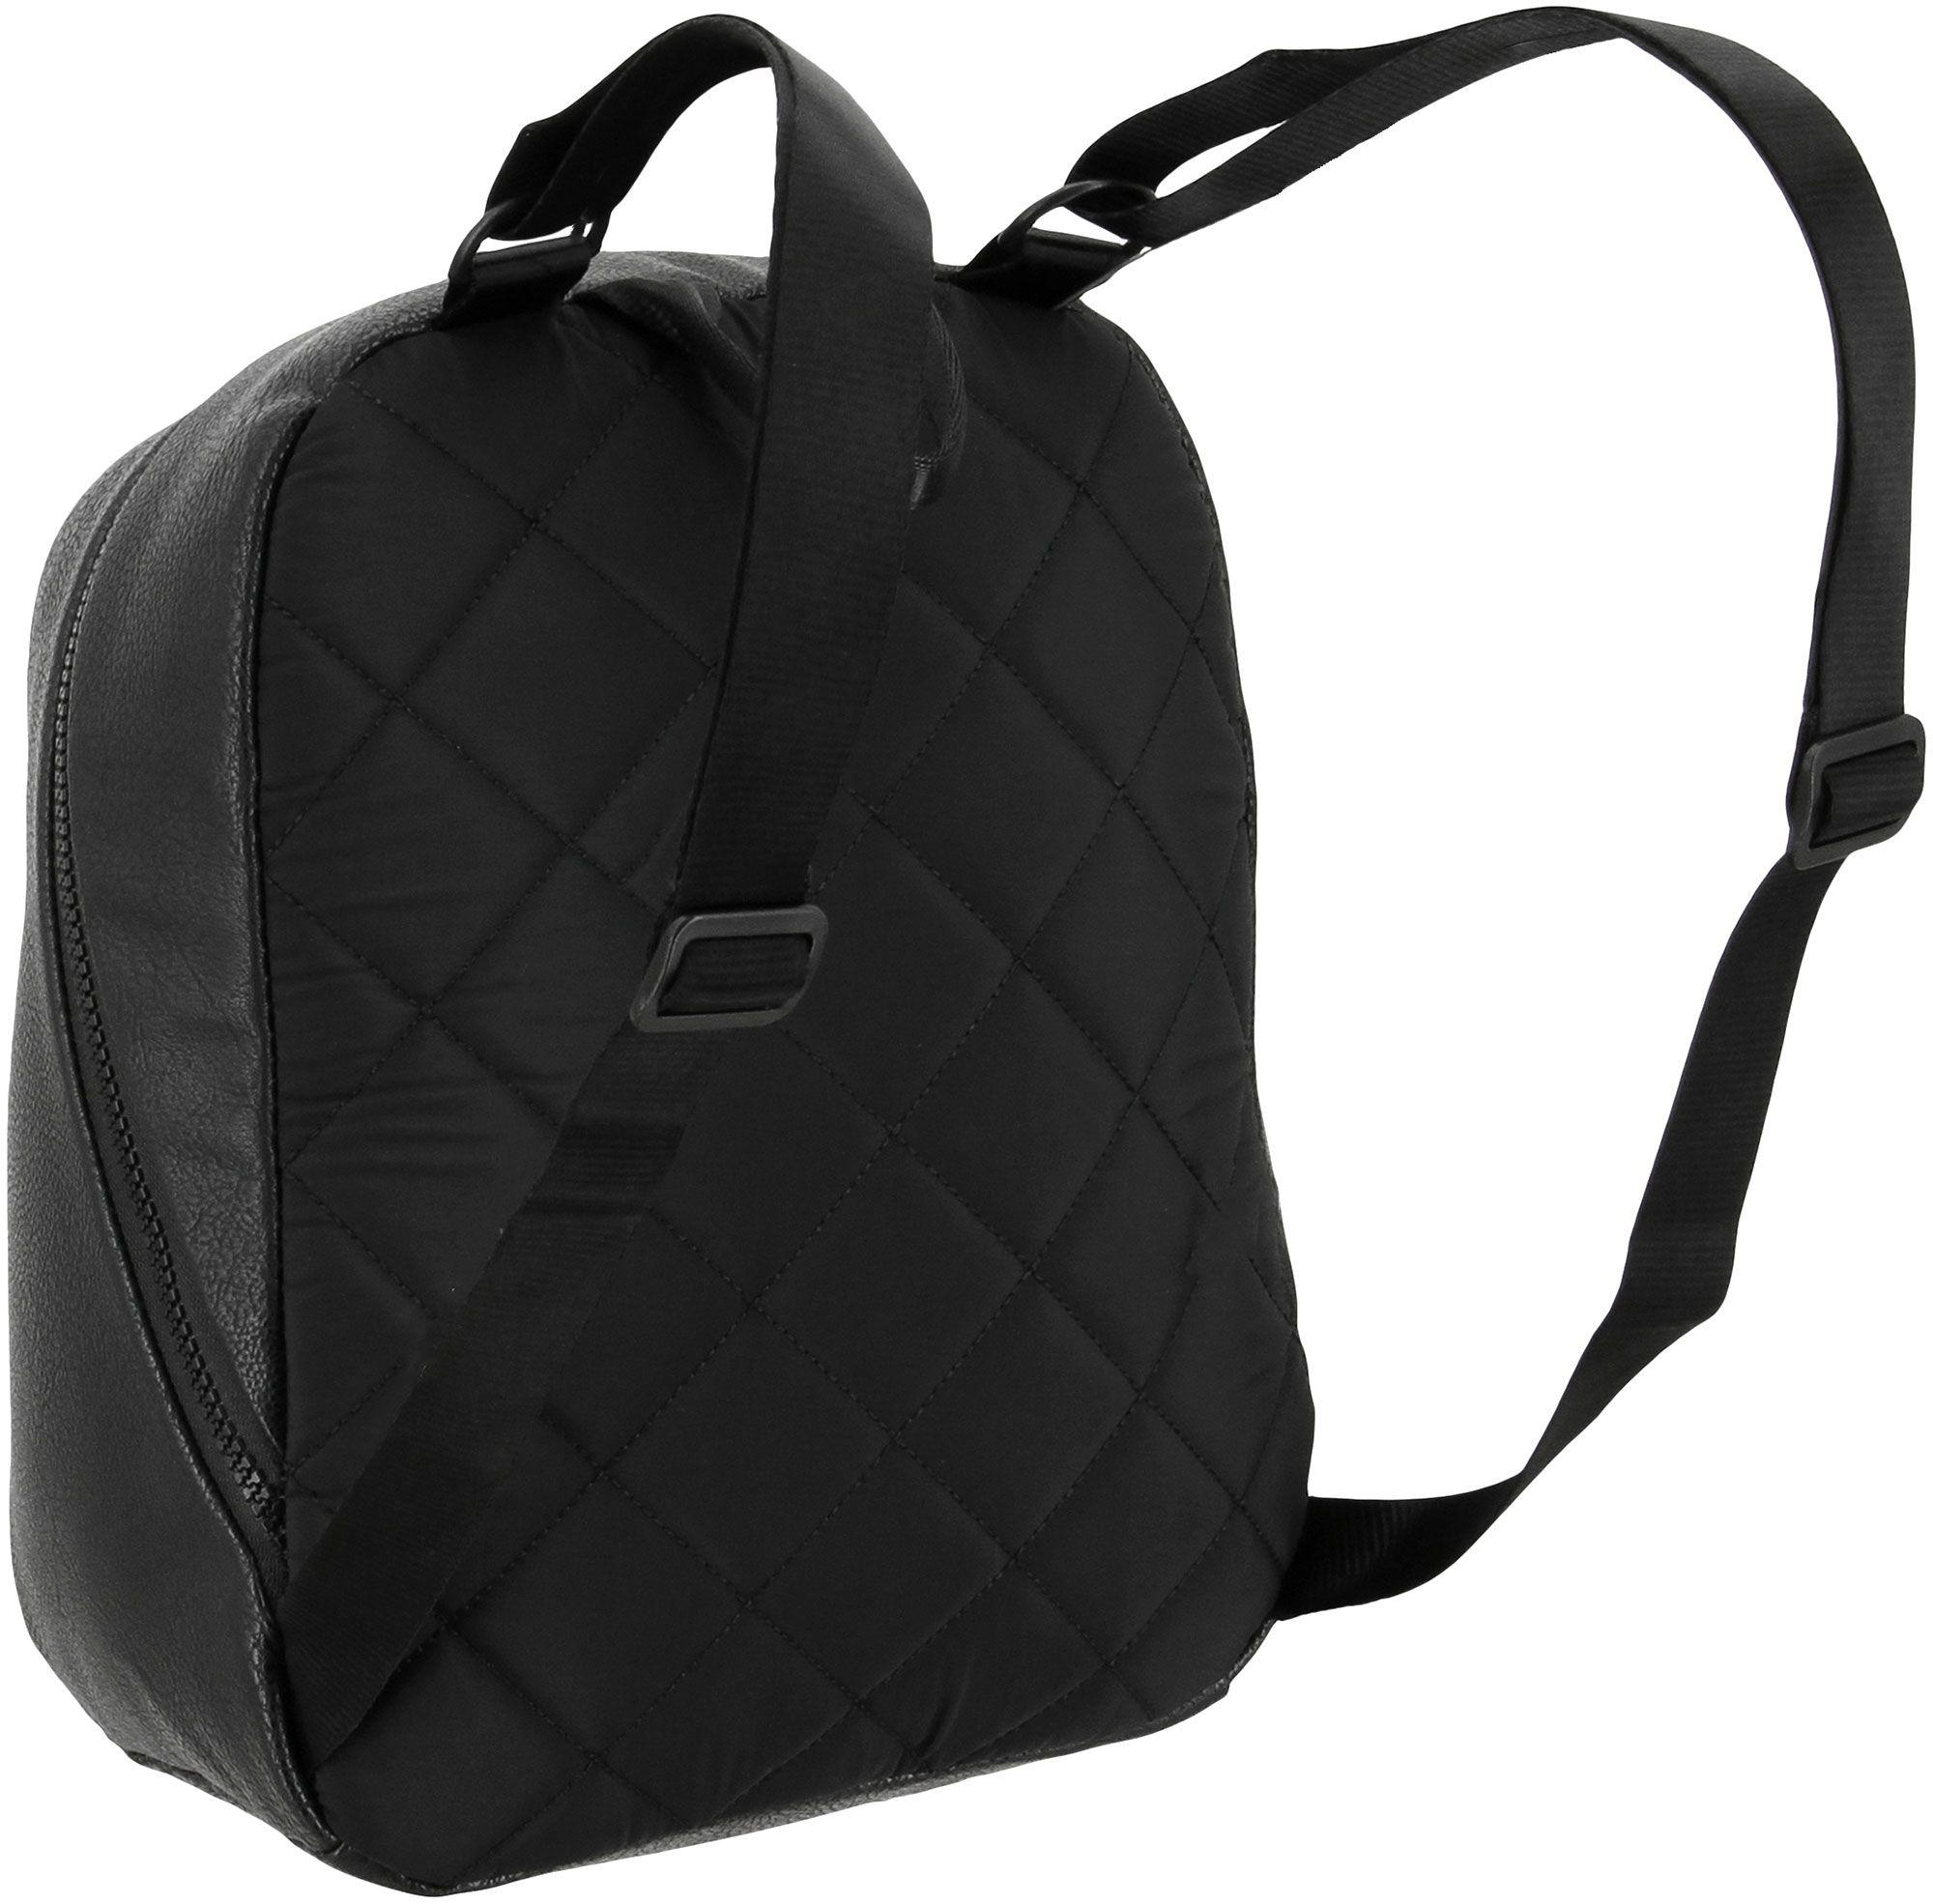 263612a1c390 Adidas - Black Originals National Compact Premium Backpack - Lyst. View  fullscreen